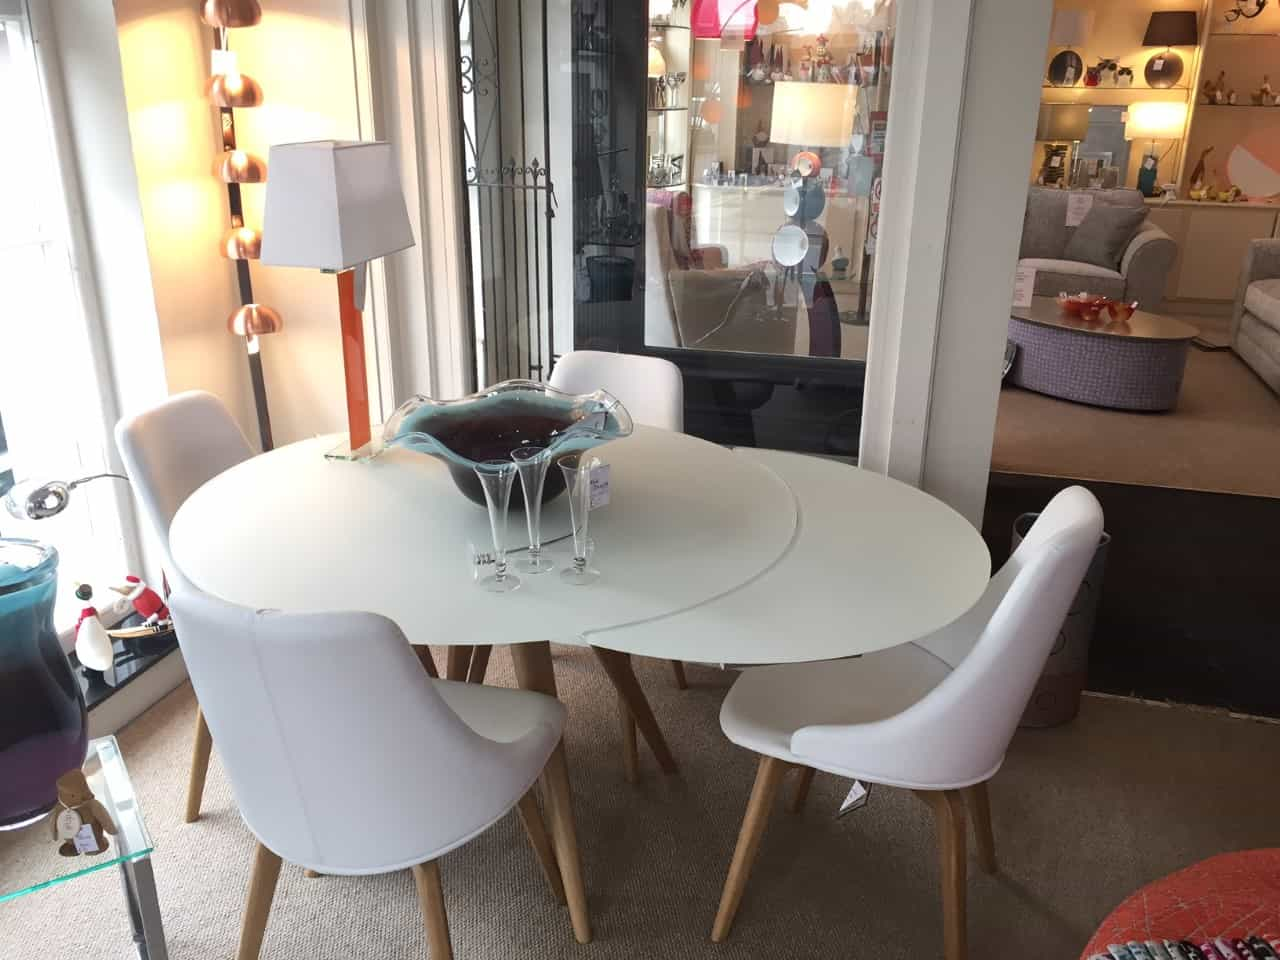 Myles Extending Dining Table From Peressini Mia Stanza